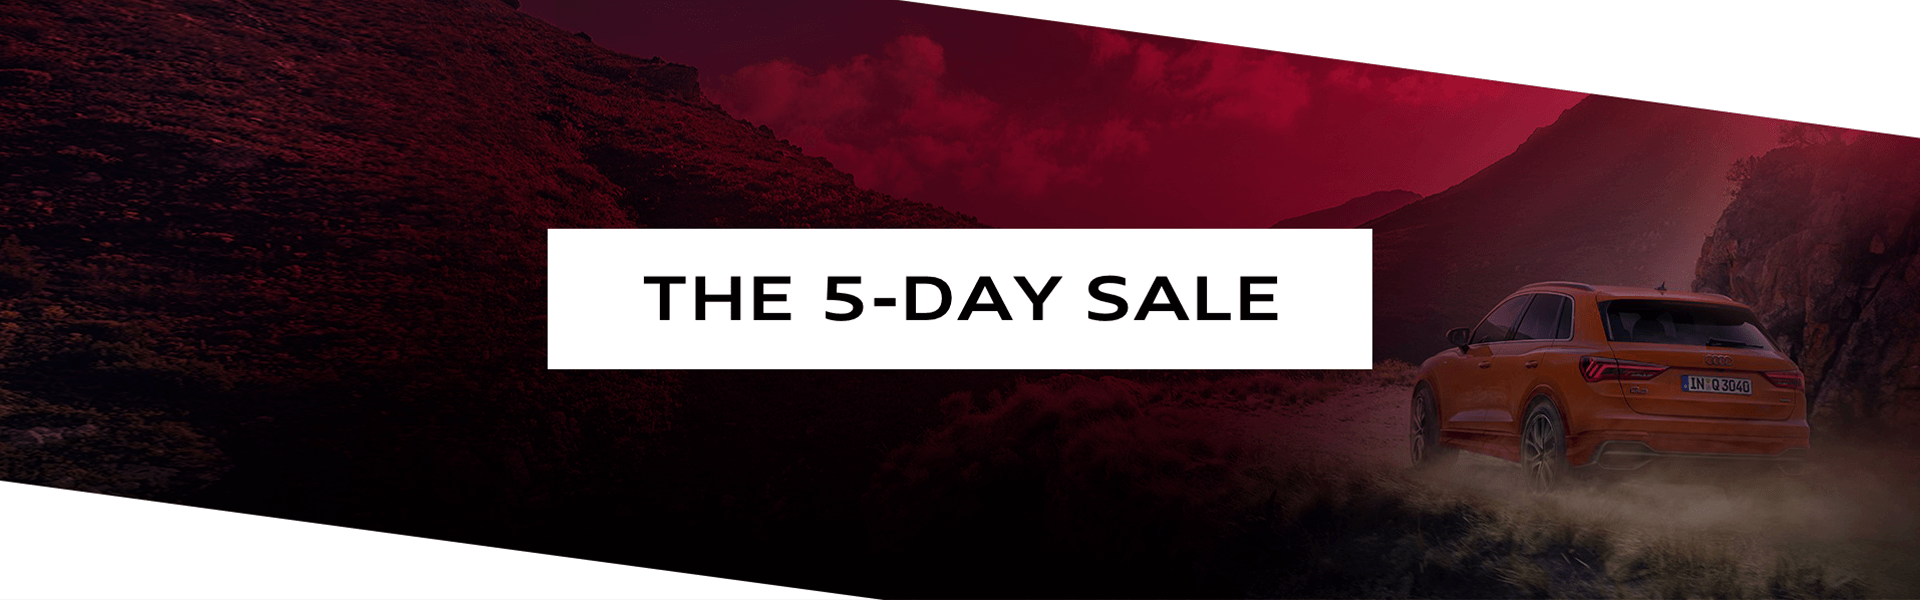 5 Day Sale.